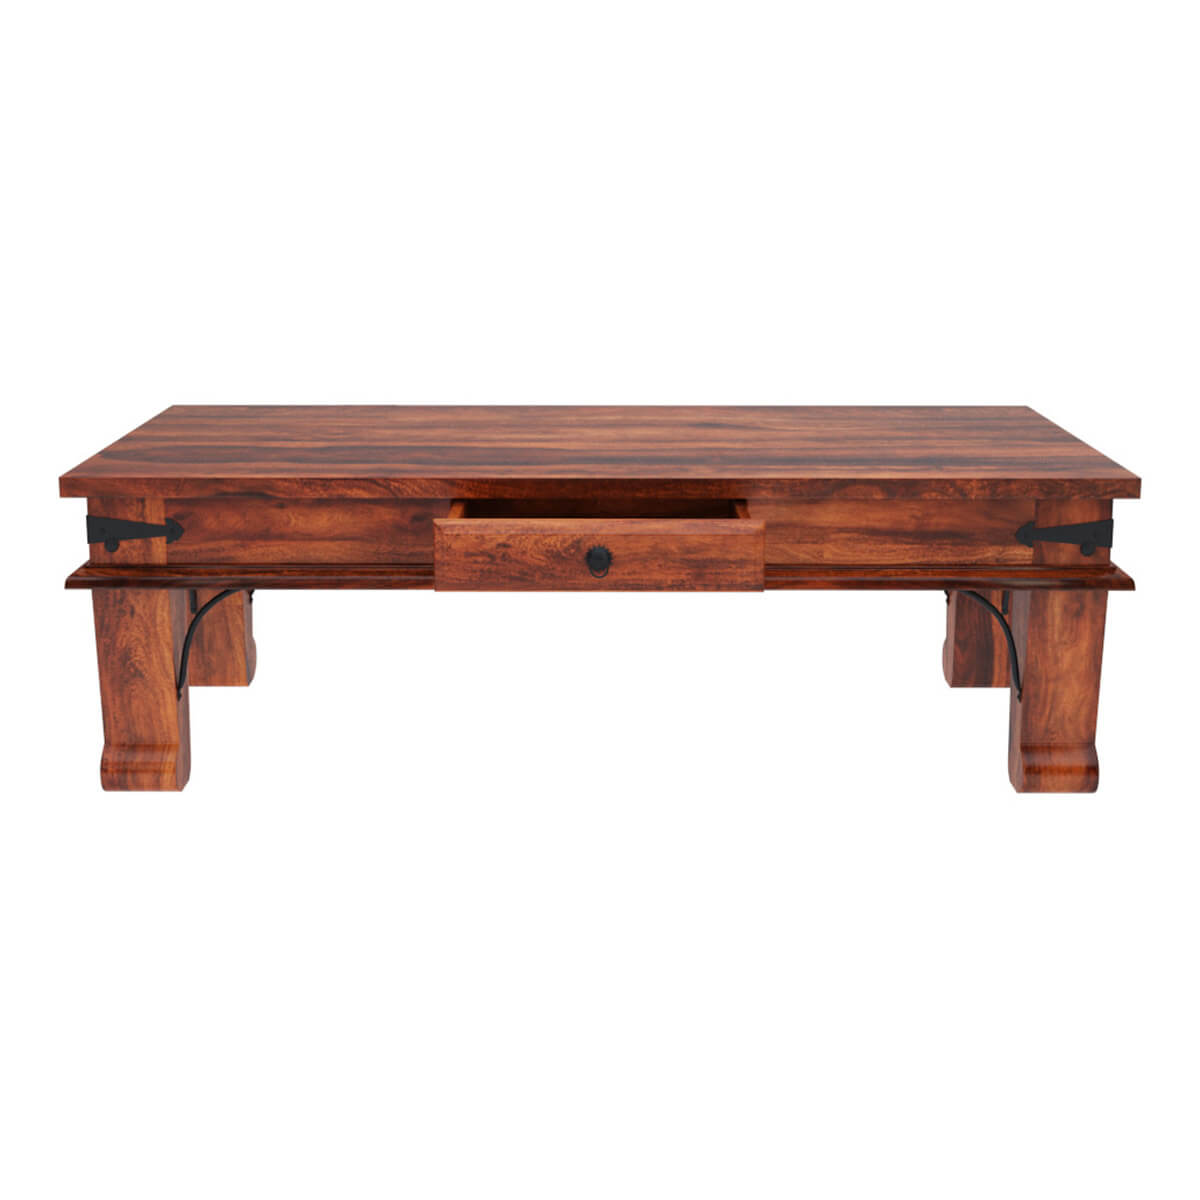 Rustic solid wood rectangular one drawer urban shaker coffee table Rustic wooden coffee tables